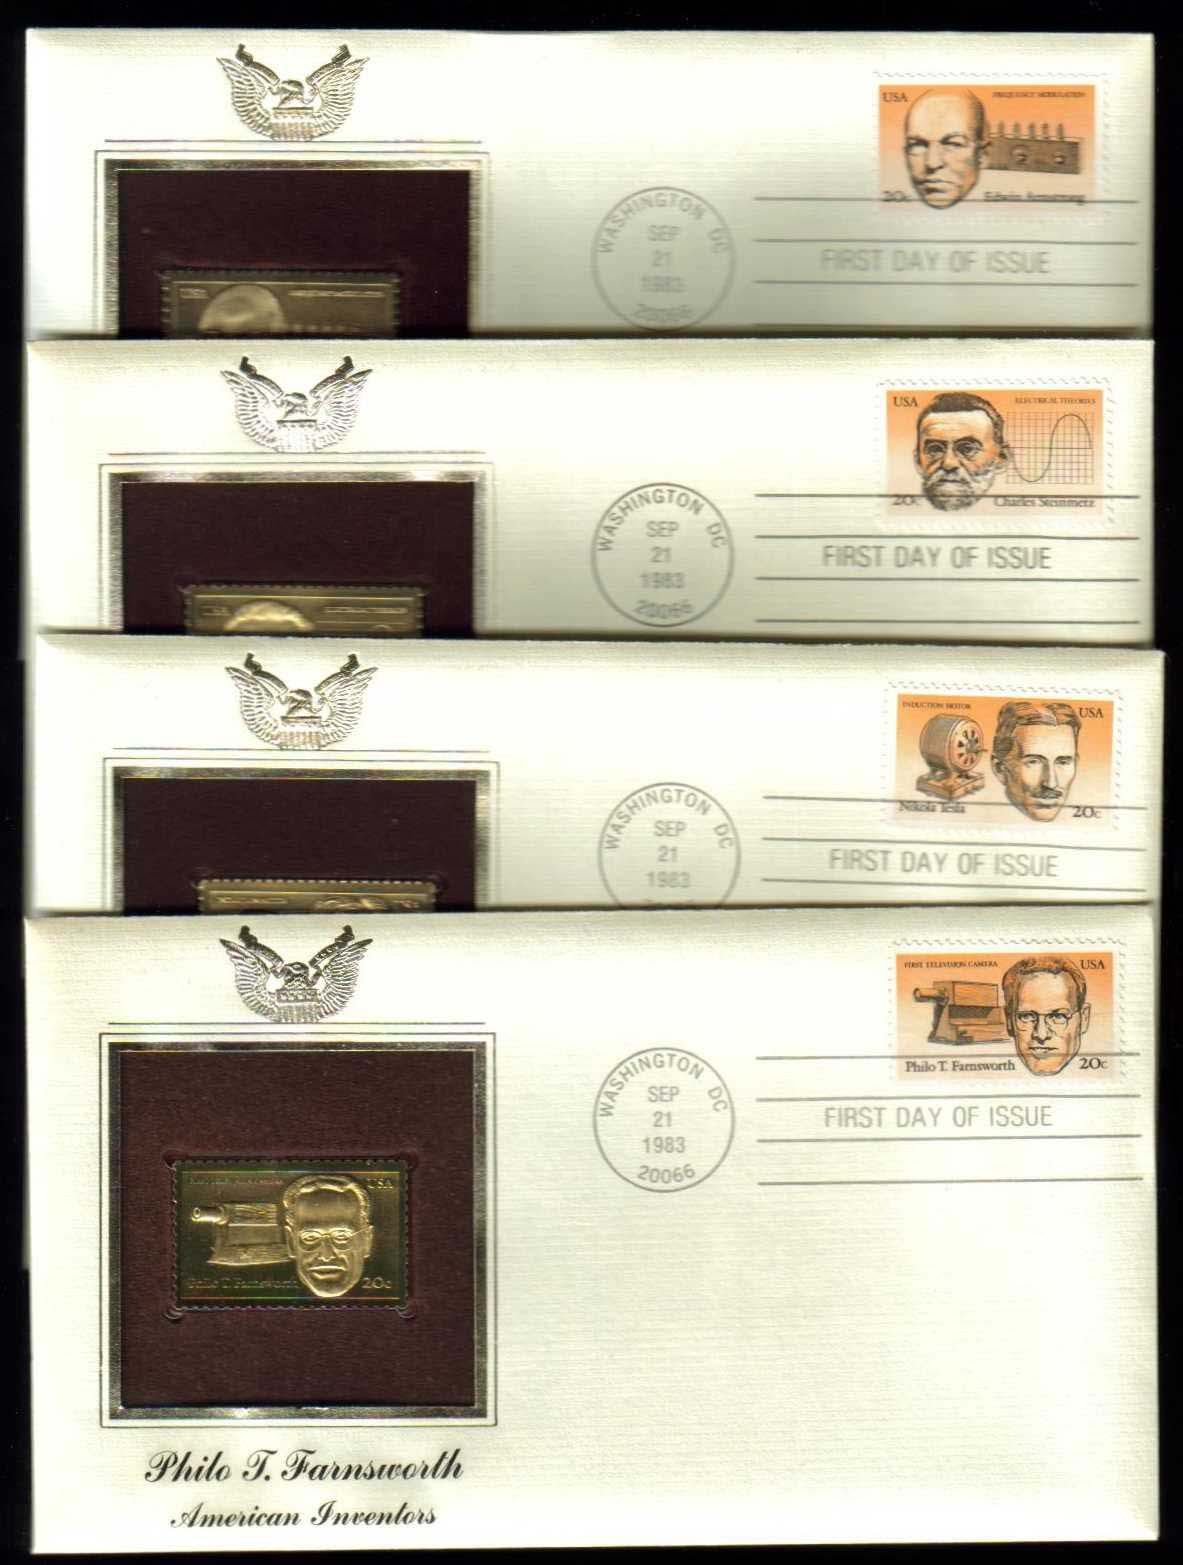 Scott 2055-2058 Golden Replica (22Kt) unaddressed FDC, set of 4 <p> <a href=&quot;/images/USA-Scott-2055-2058-Gold.jpg&quot;><font color=green><b>View the image</a></b></font>